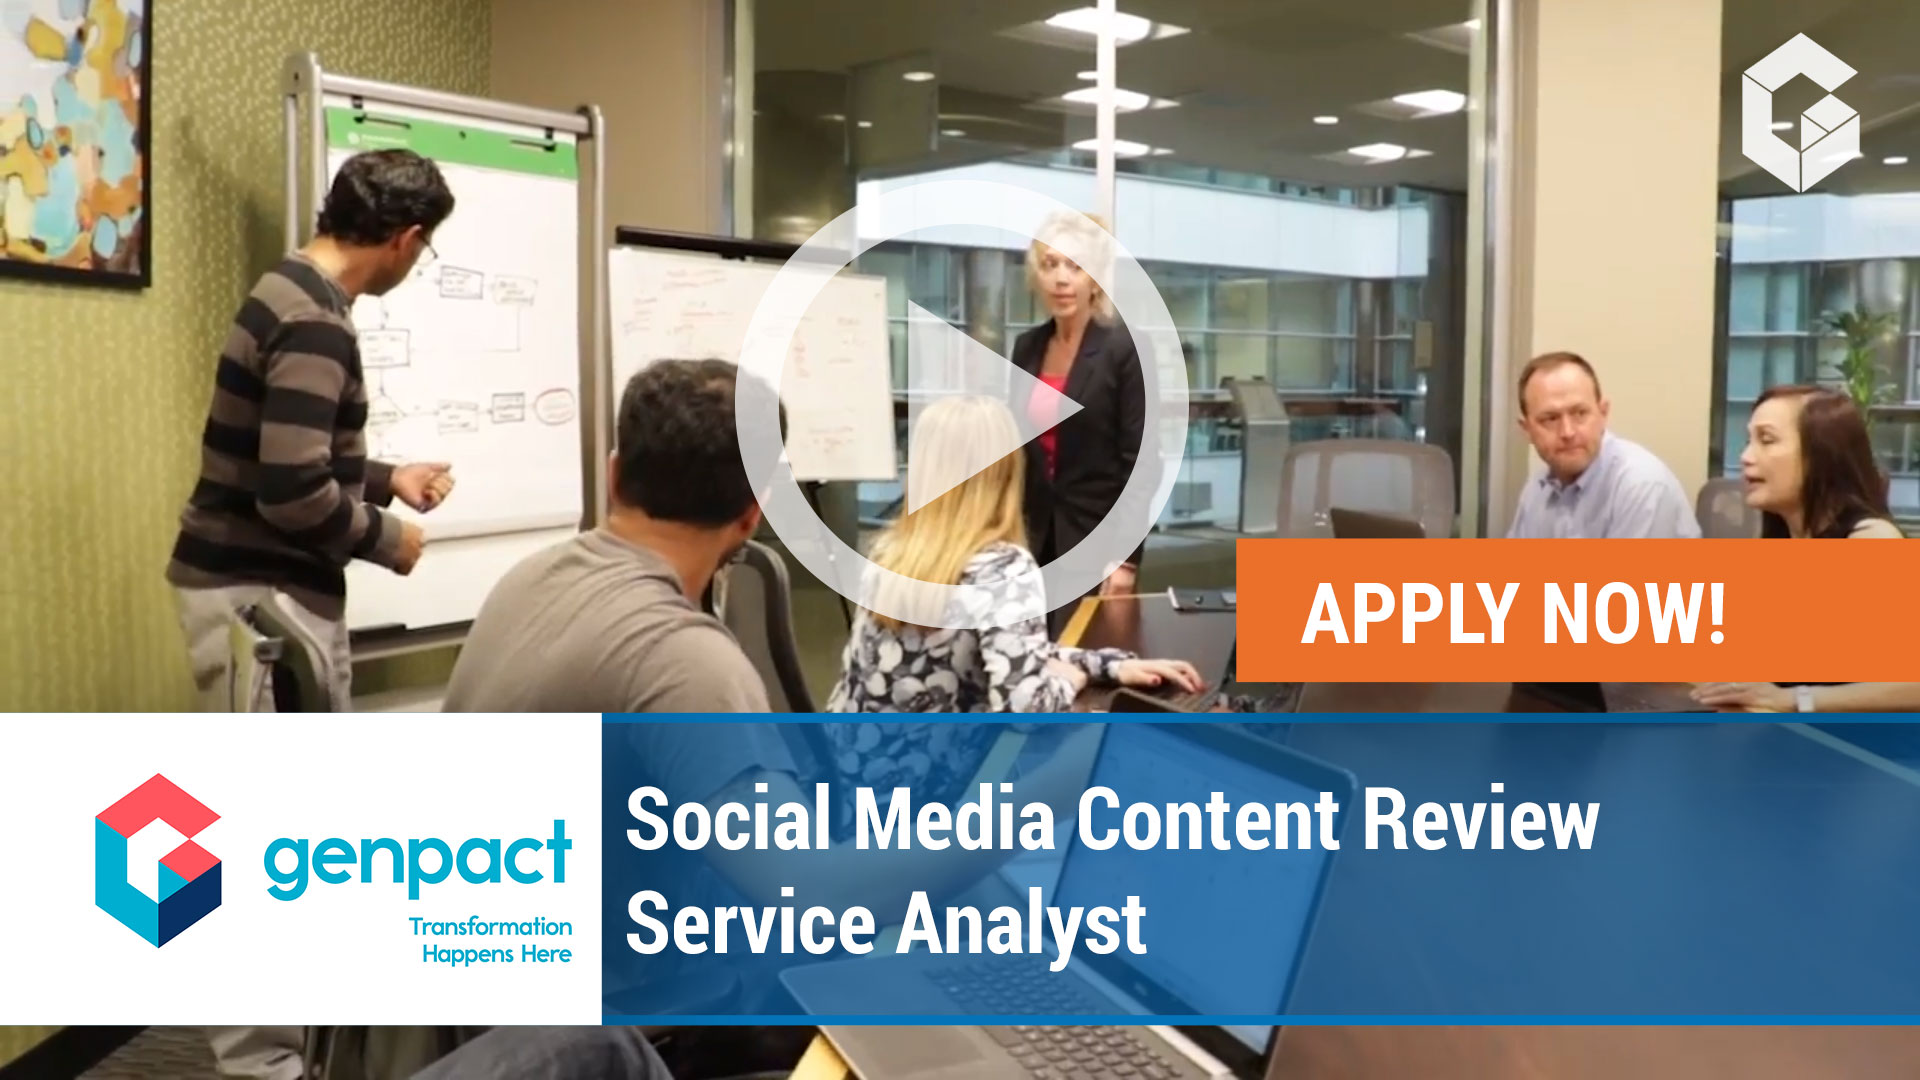 Watch our careers video for available job opening Social Media Content Review Service Analyst in Jacksonville, Florida